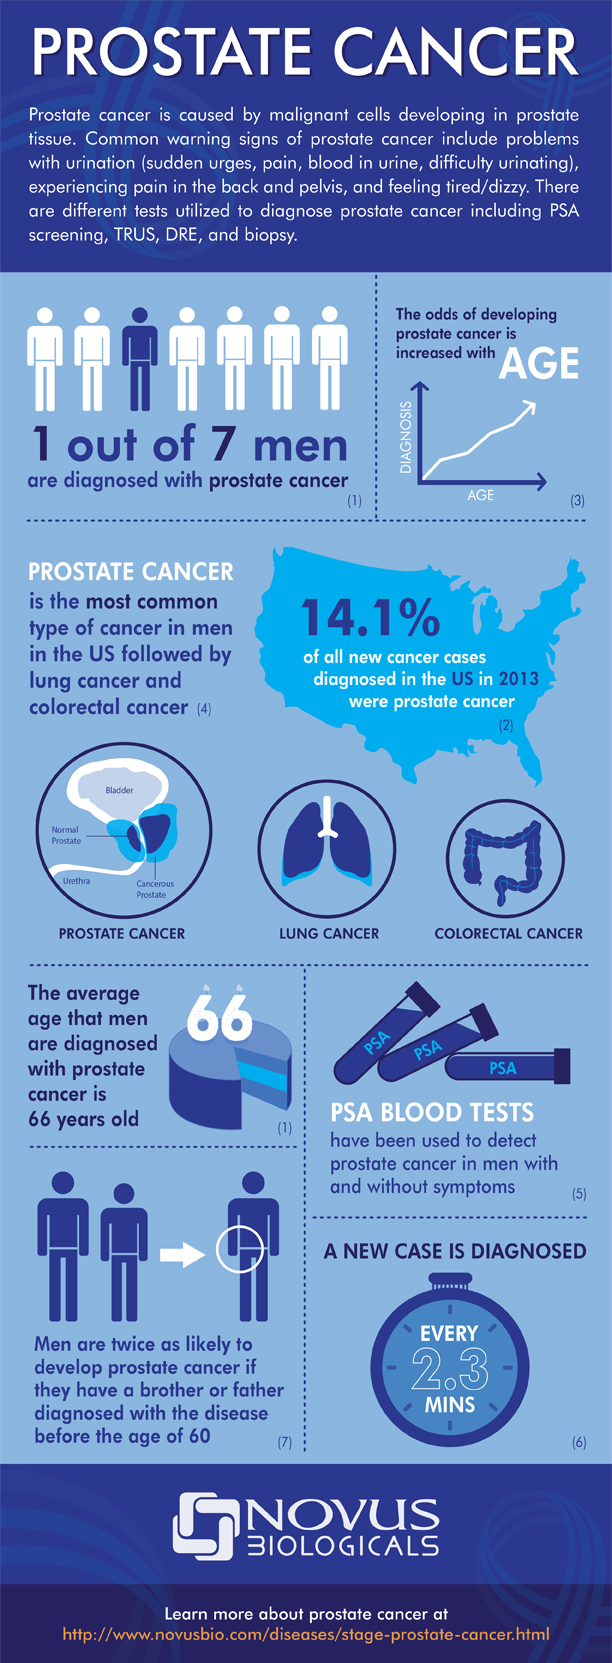 facts about prostate cancer Overview & facts cancer of the prostate, a gland in the male reproductive system, is a major health concern for american men the disease is rare before age 50, and experts believe most elderly.